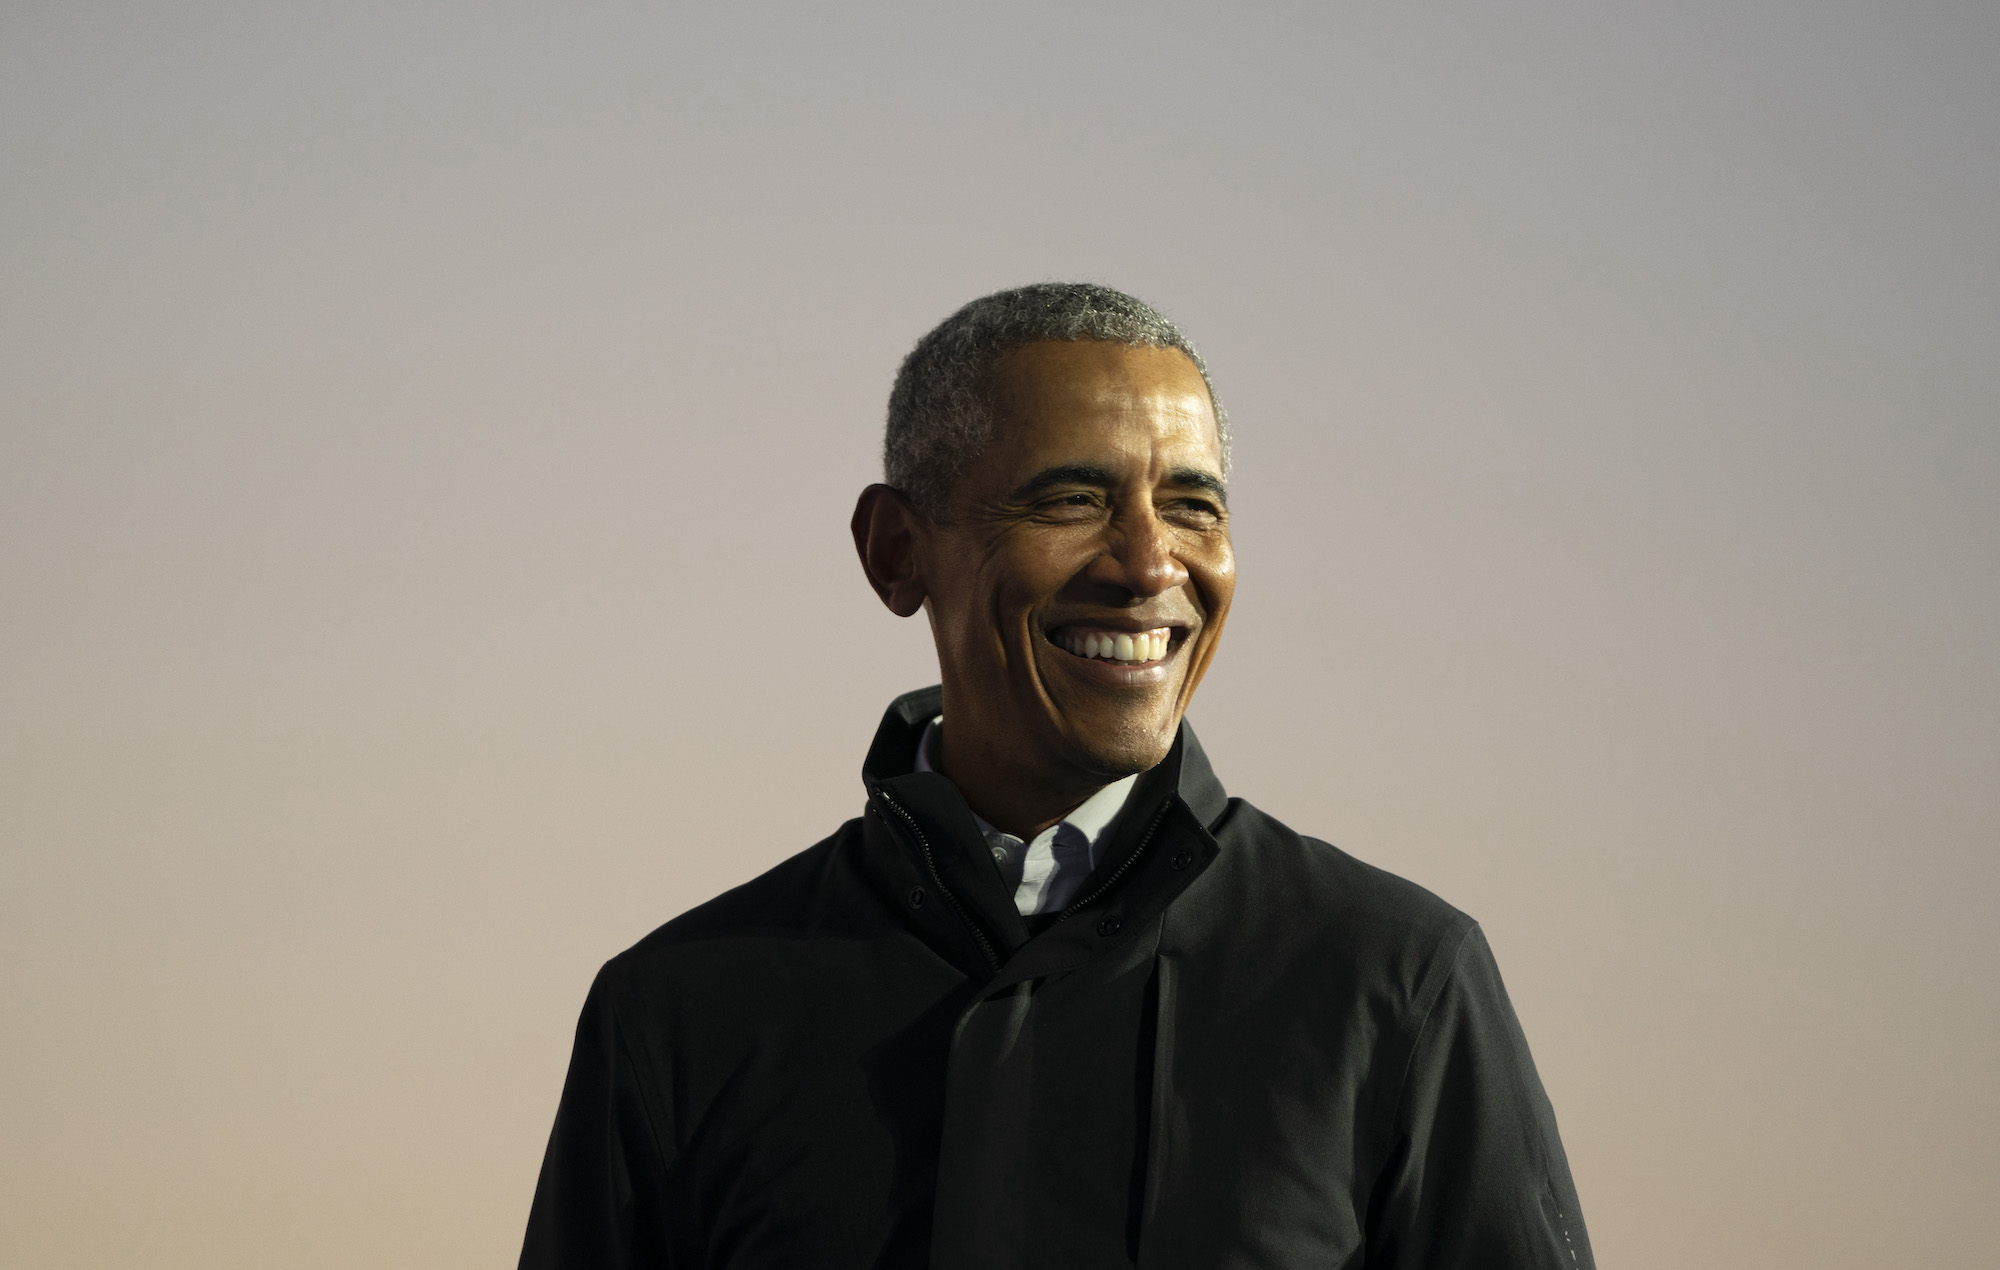 Barack Obama shares 2021 summer playlist featuring Migos, H.E.R., Silk Sonic and more